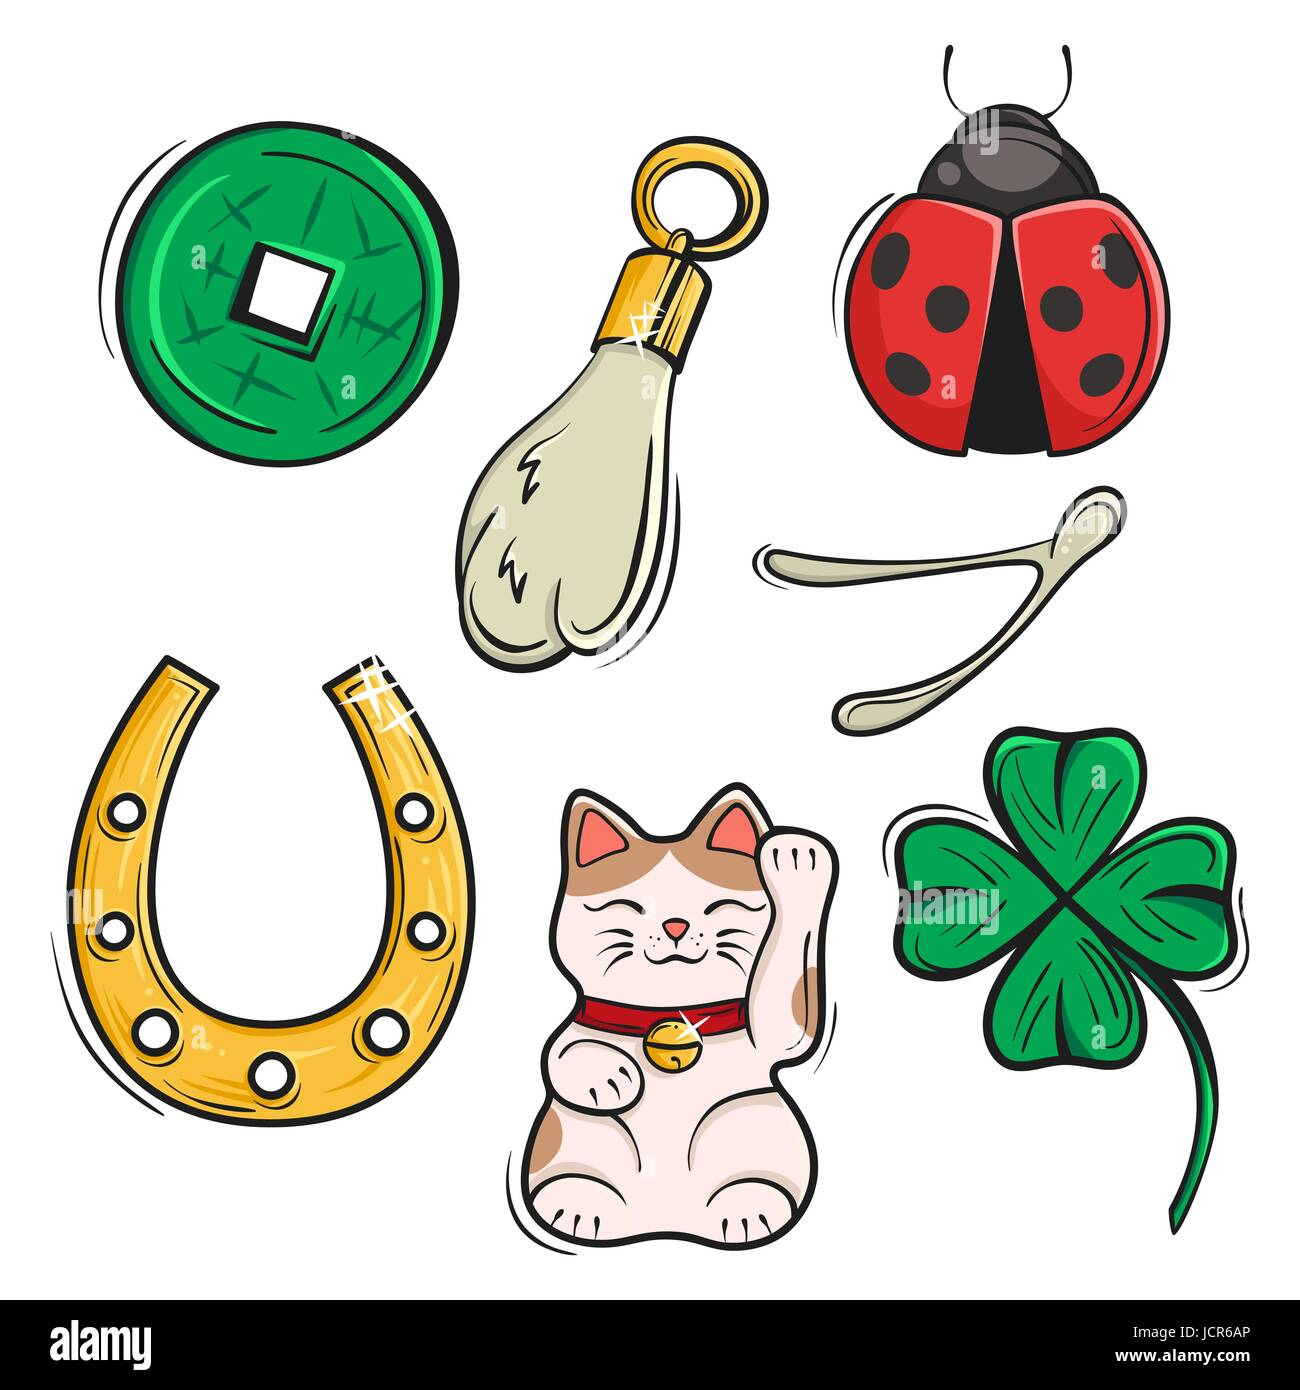 Vector set of lucky charms symbols and talismans vector stock vector set of lucky charms symbols and talismans vector illustration symbols of luck prosperity and success biocorpaavc Image collections